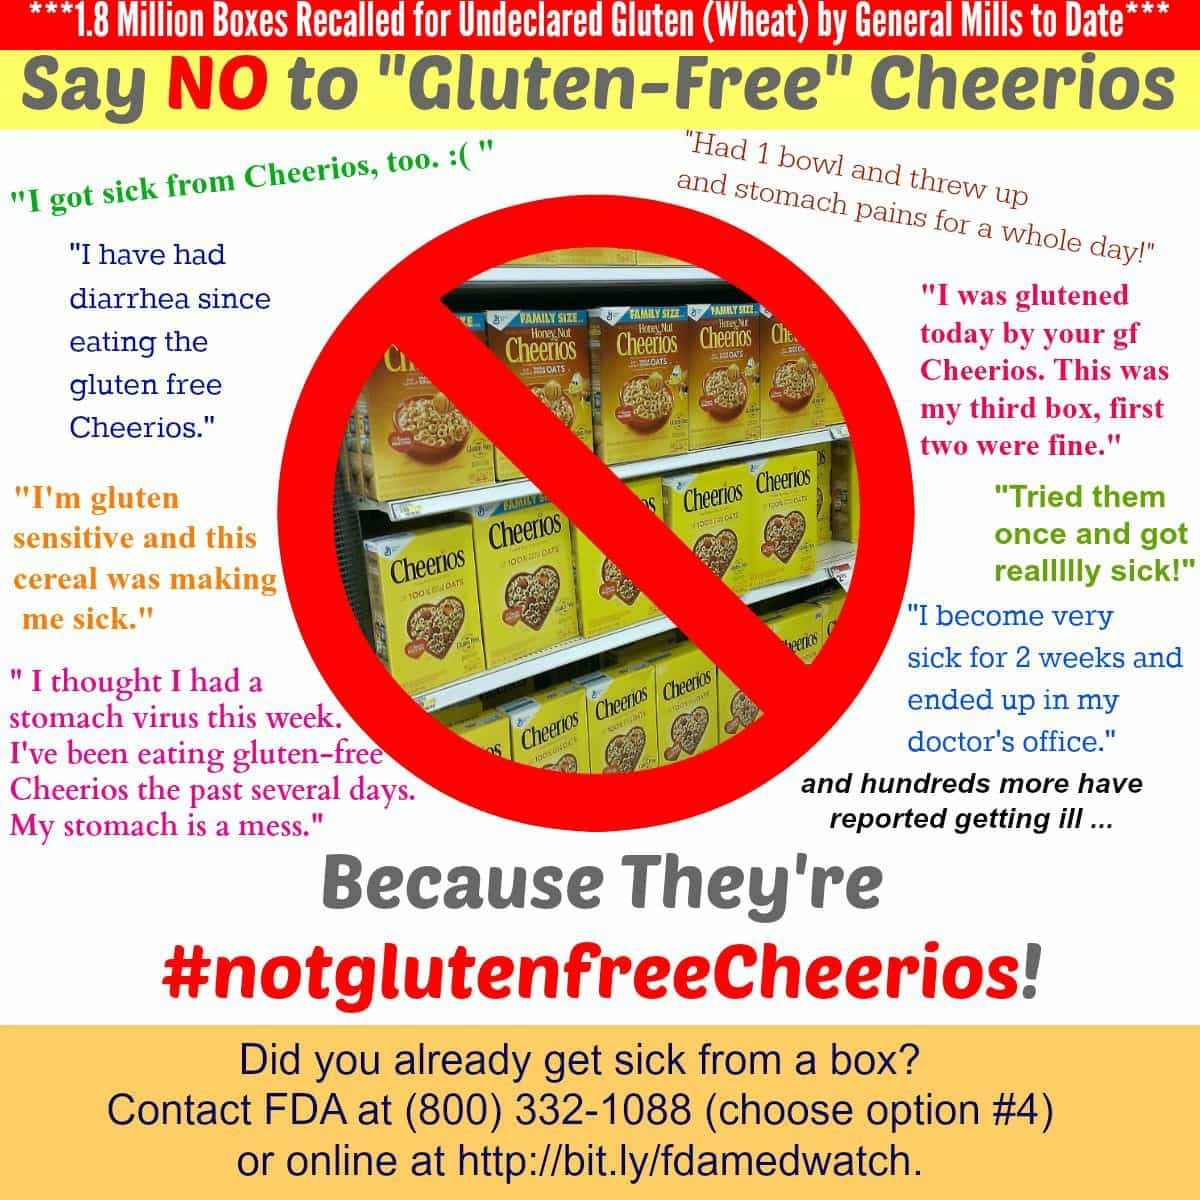 Say No to Gluten-Free Cheerios Poster (They Are Making Hundreds Ill and 1.8M Boxes Have Been Recalled)